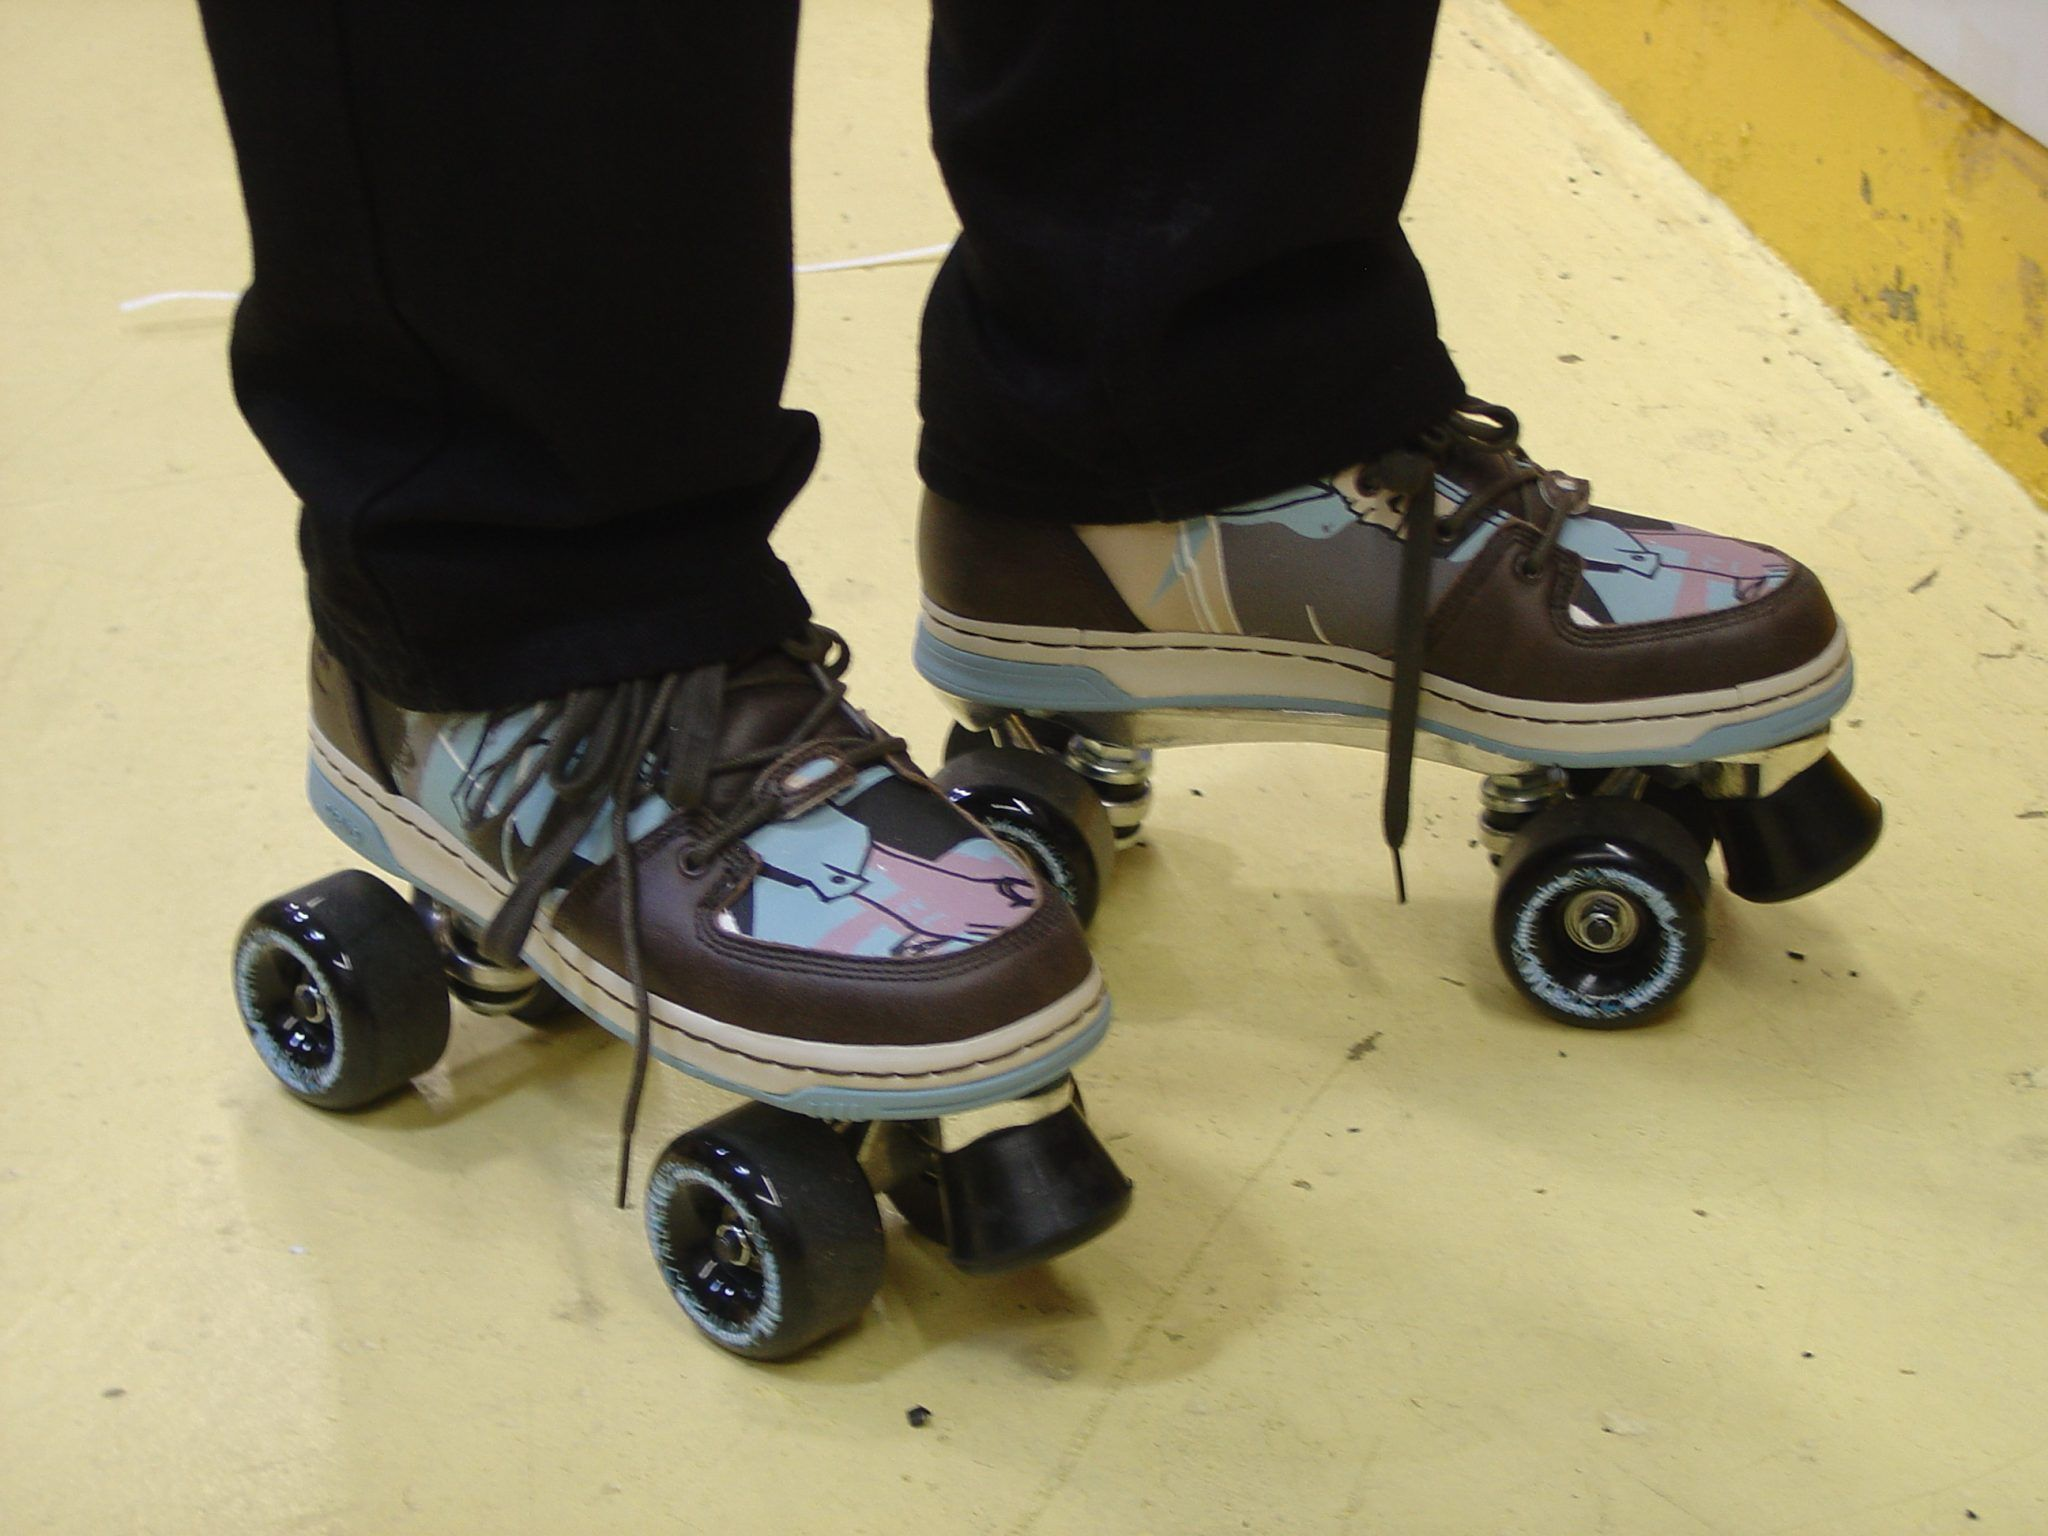 Custom Roller Skates Make So Why Would You Want To Make Your Own Roller Skates Because You Can Imagine Rolling Int Roller Skates Skate Snowboard Girl